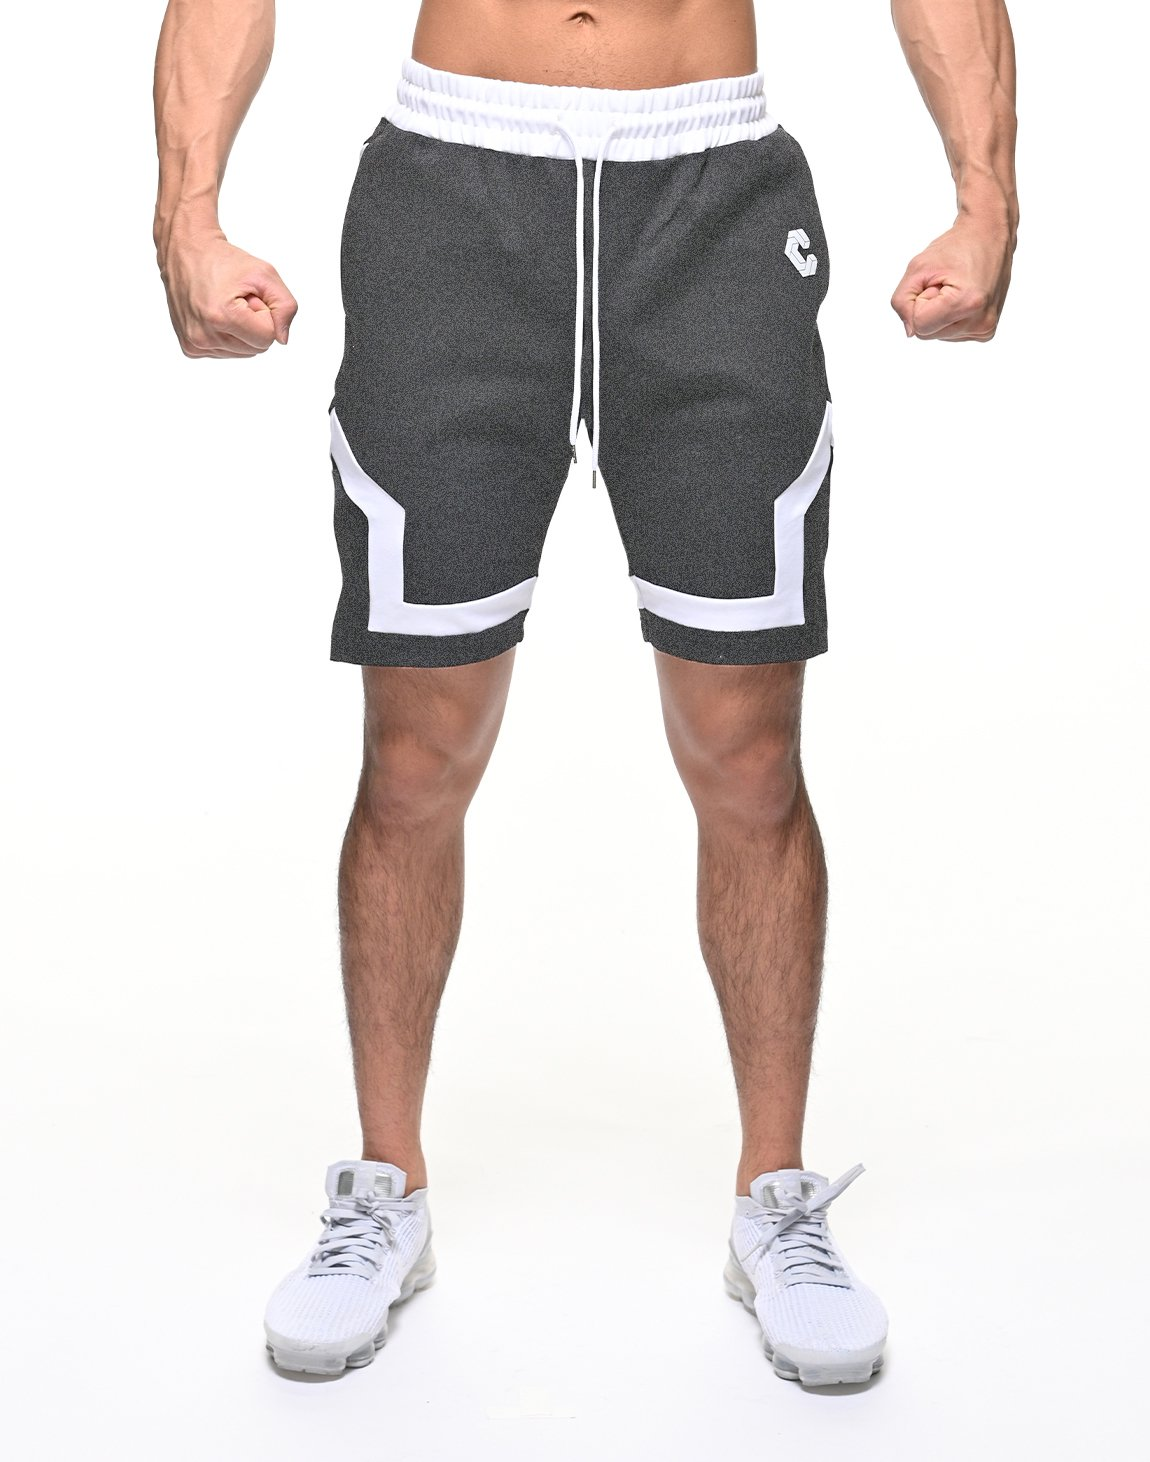 <img class='new_mark_img1' src='https://img.shop-pro.jp/img/new/icons1.gif' style='border:none;display:inline;margin:0px;padding:0px;width:auto;' />CRONOS BACK LOGO SHORTS【C.GRAY】